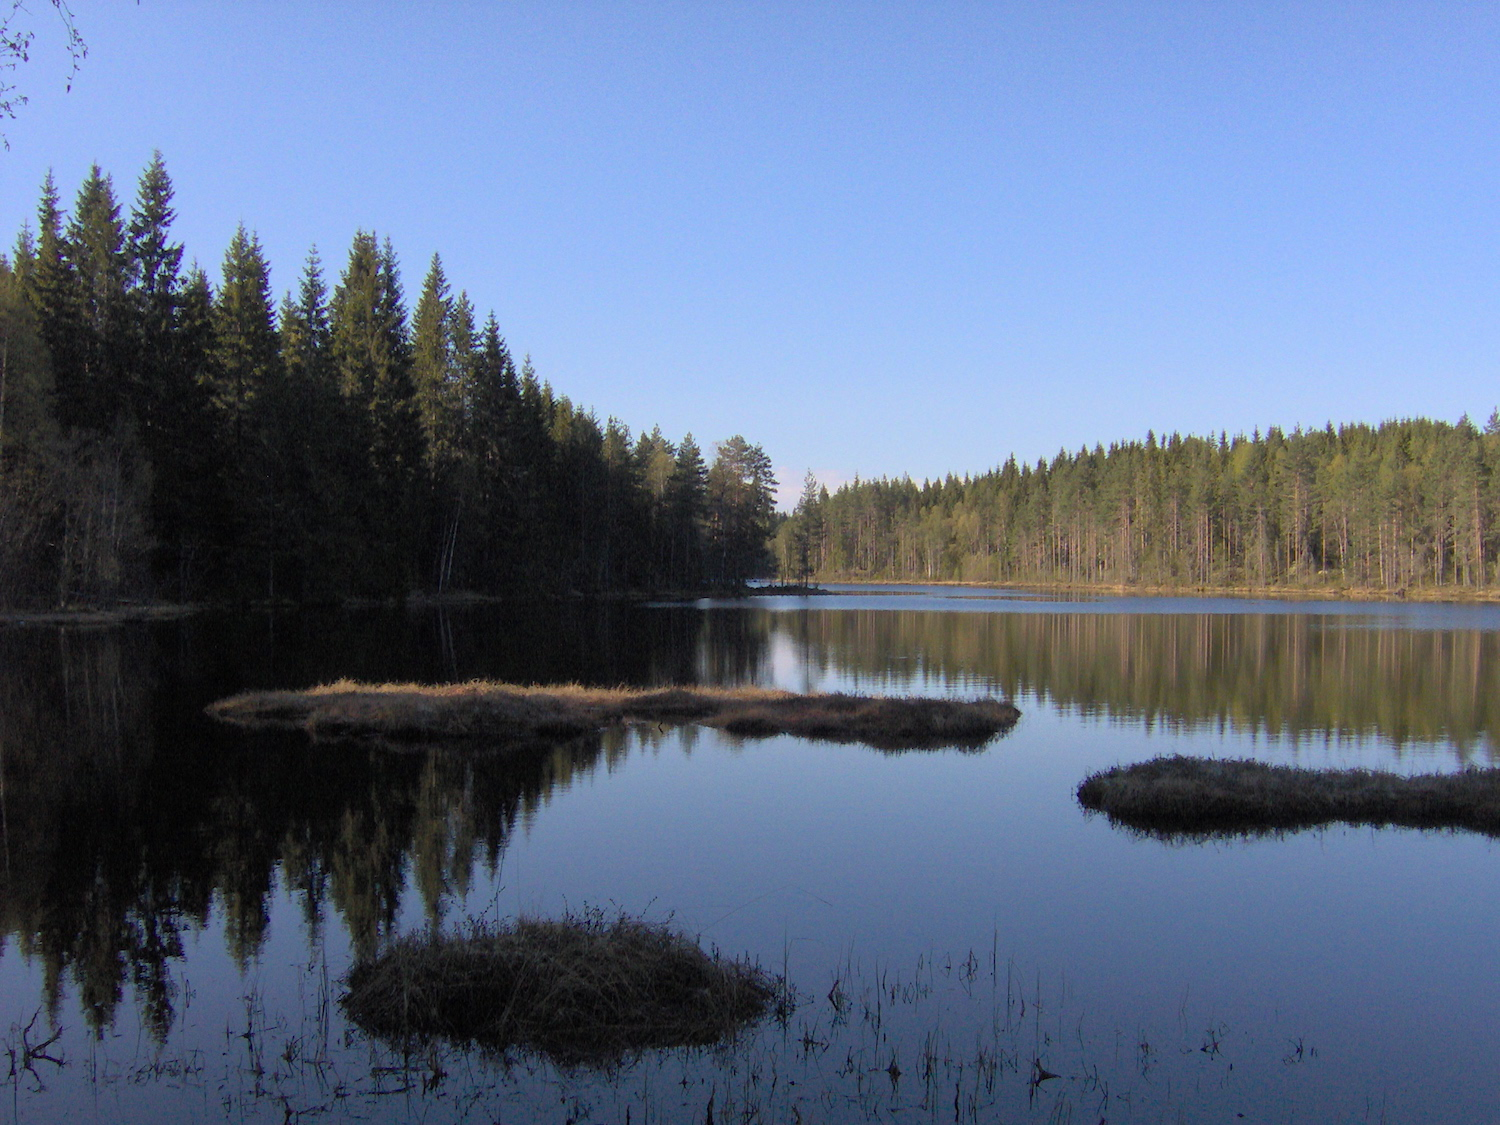 One of the many lakes nearby